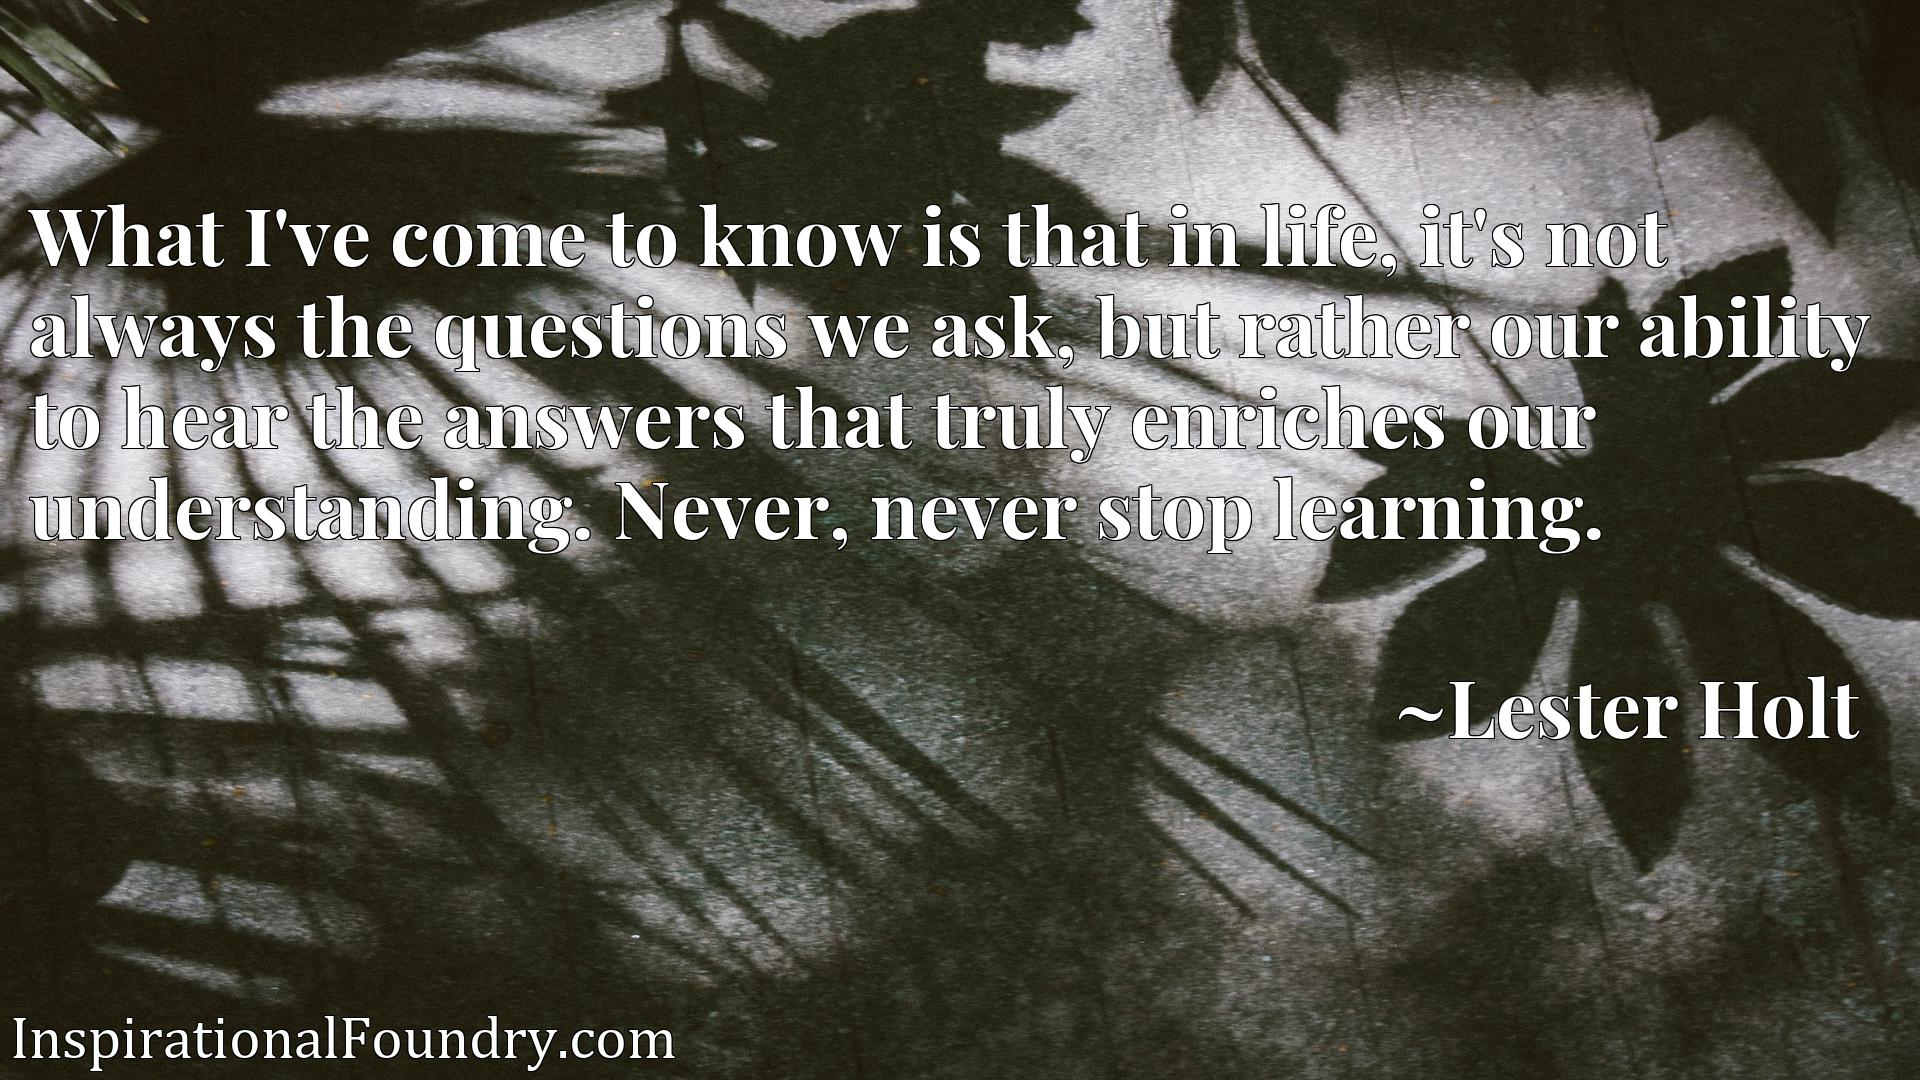 What I've come to know is that in life, it's not always the questions we ask, but rather our ability to hear the answers that truly enriches our understanding. Never, never stop learning.